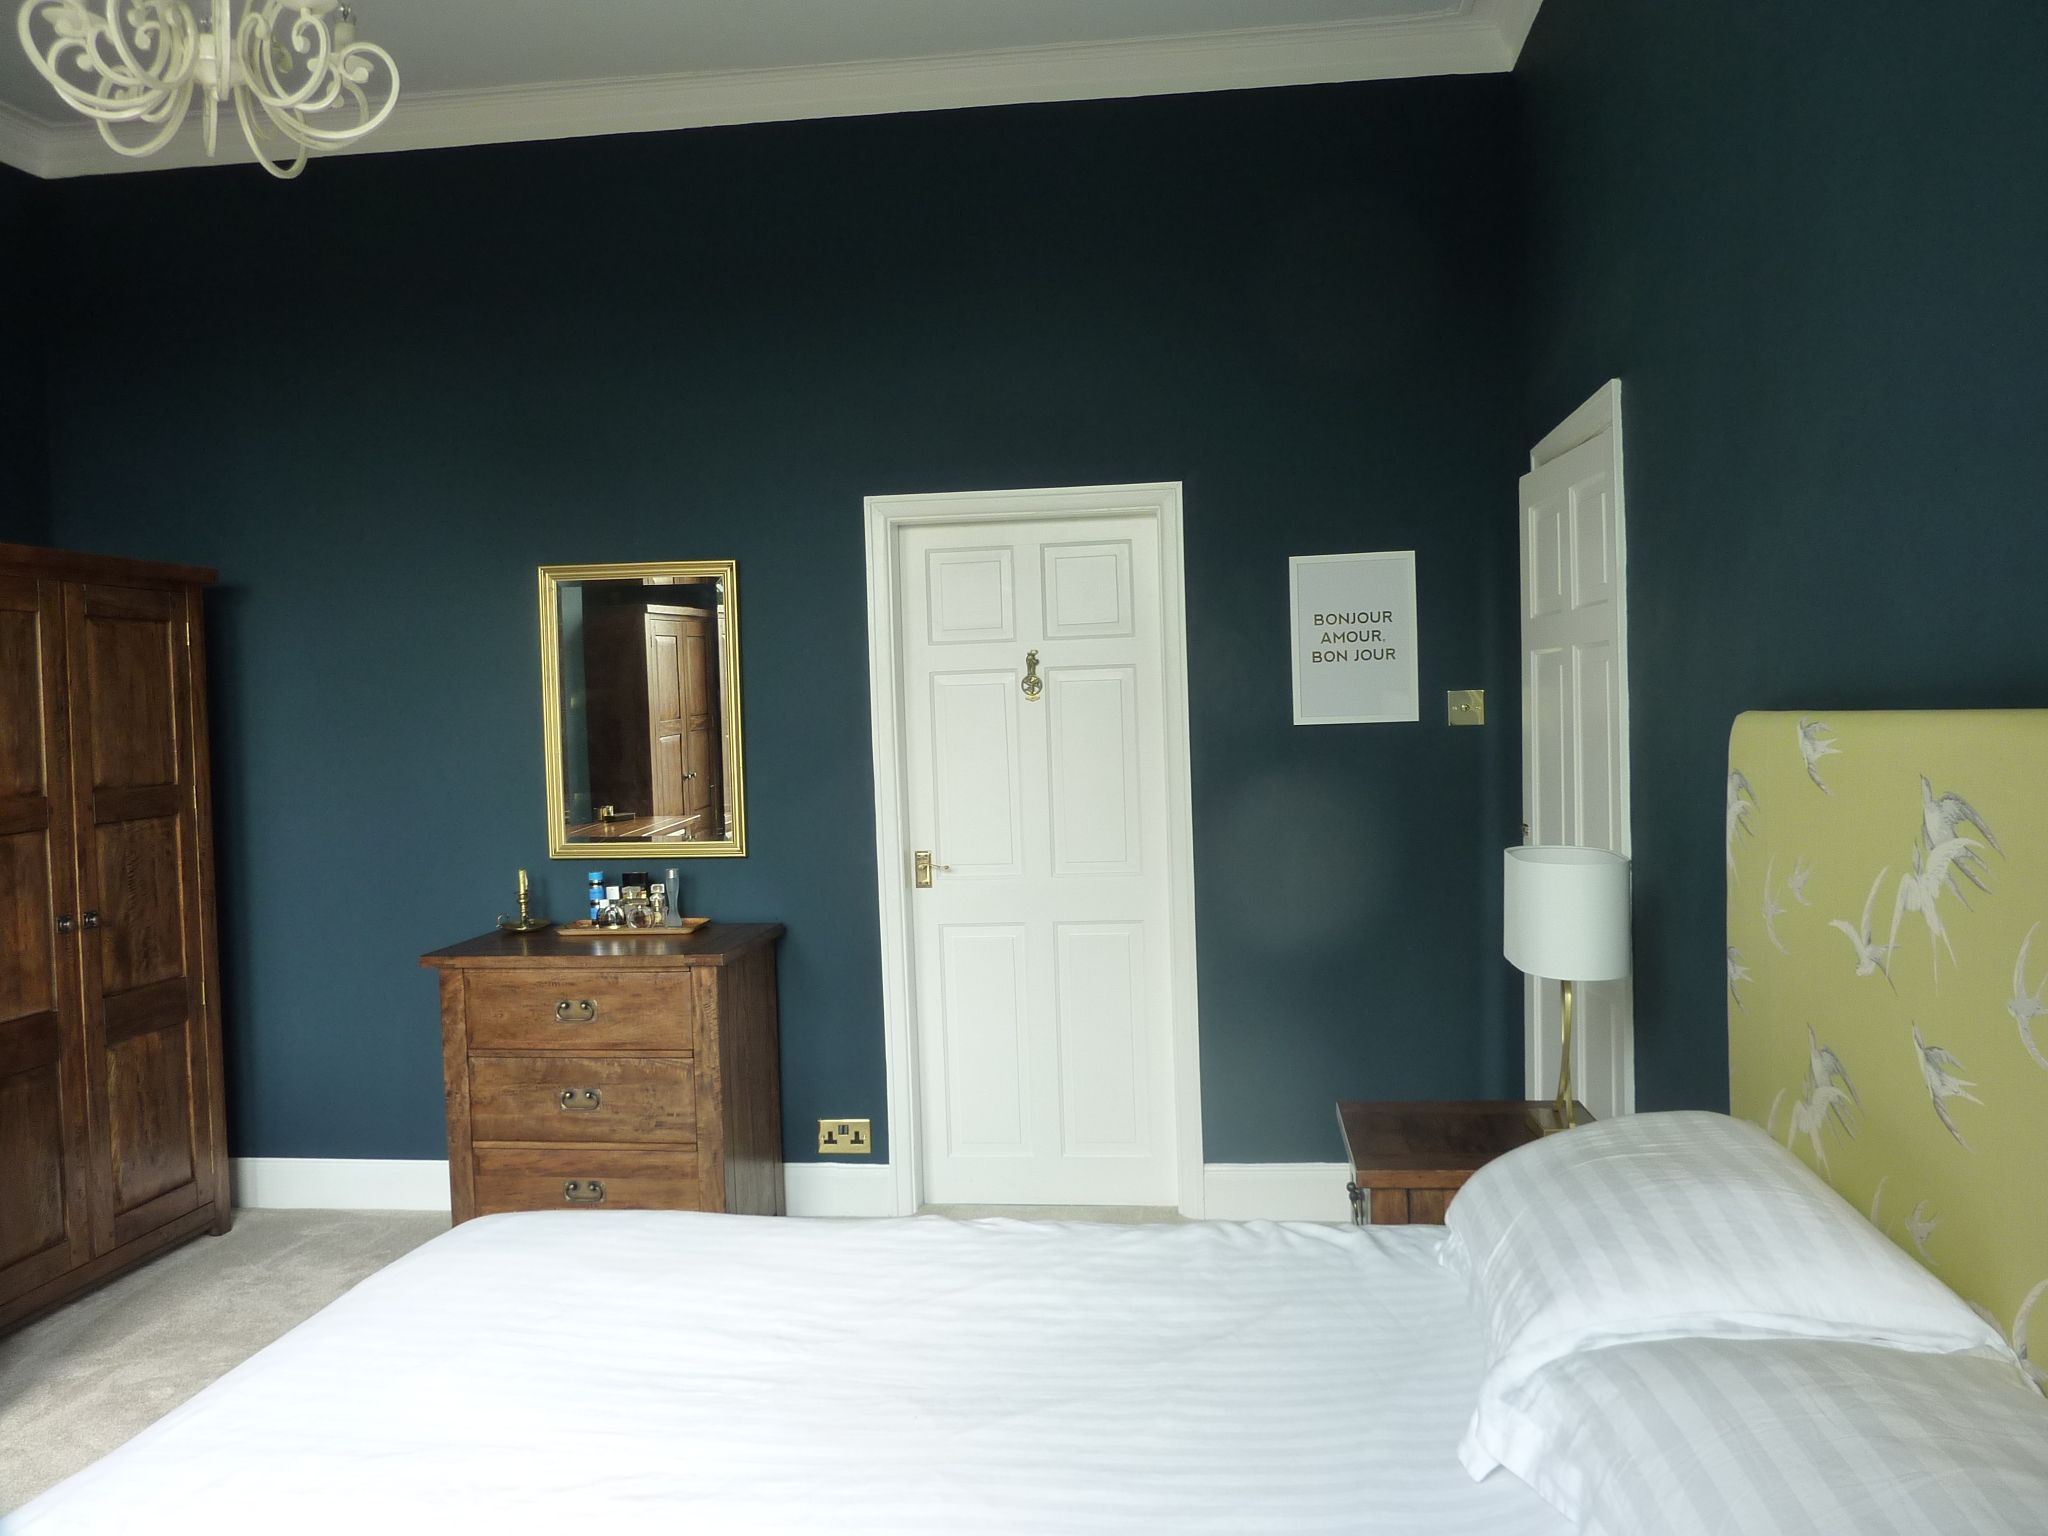 farrow and ball hague blue bedroom wall color pinterest hague blue blue bedrooms and bedrooms. Black Bedroom Furniture Sets. Home Design Ideas